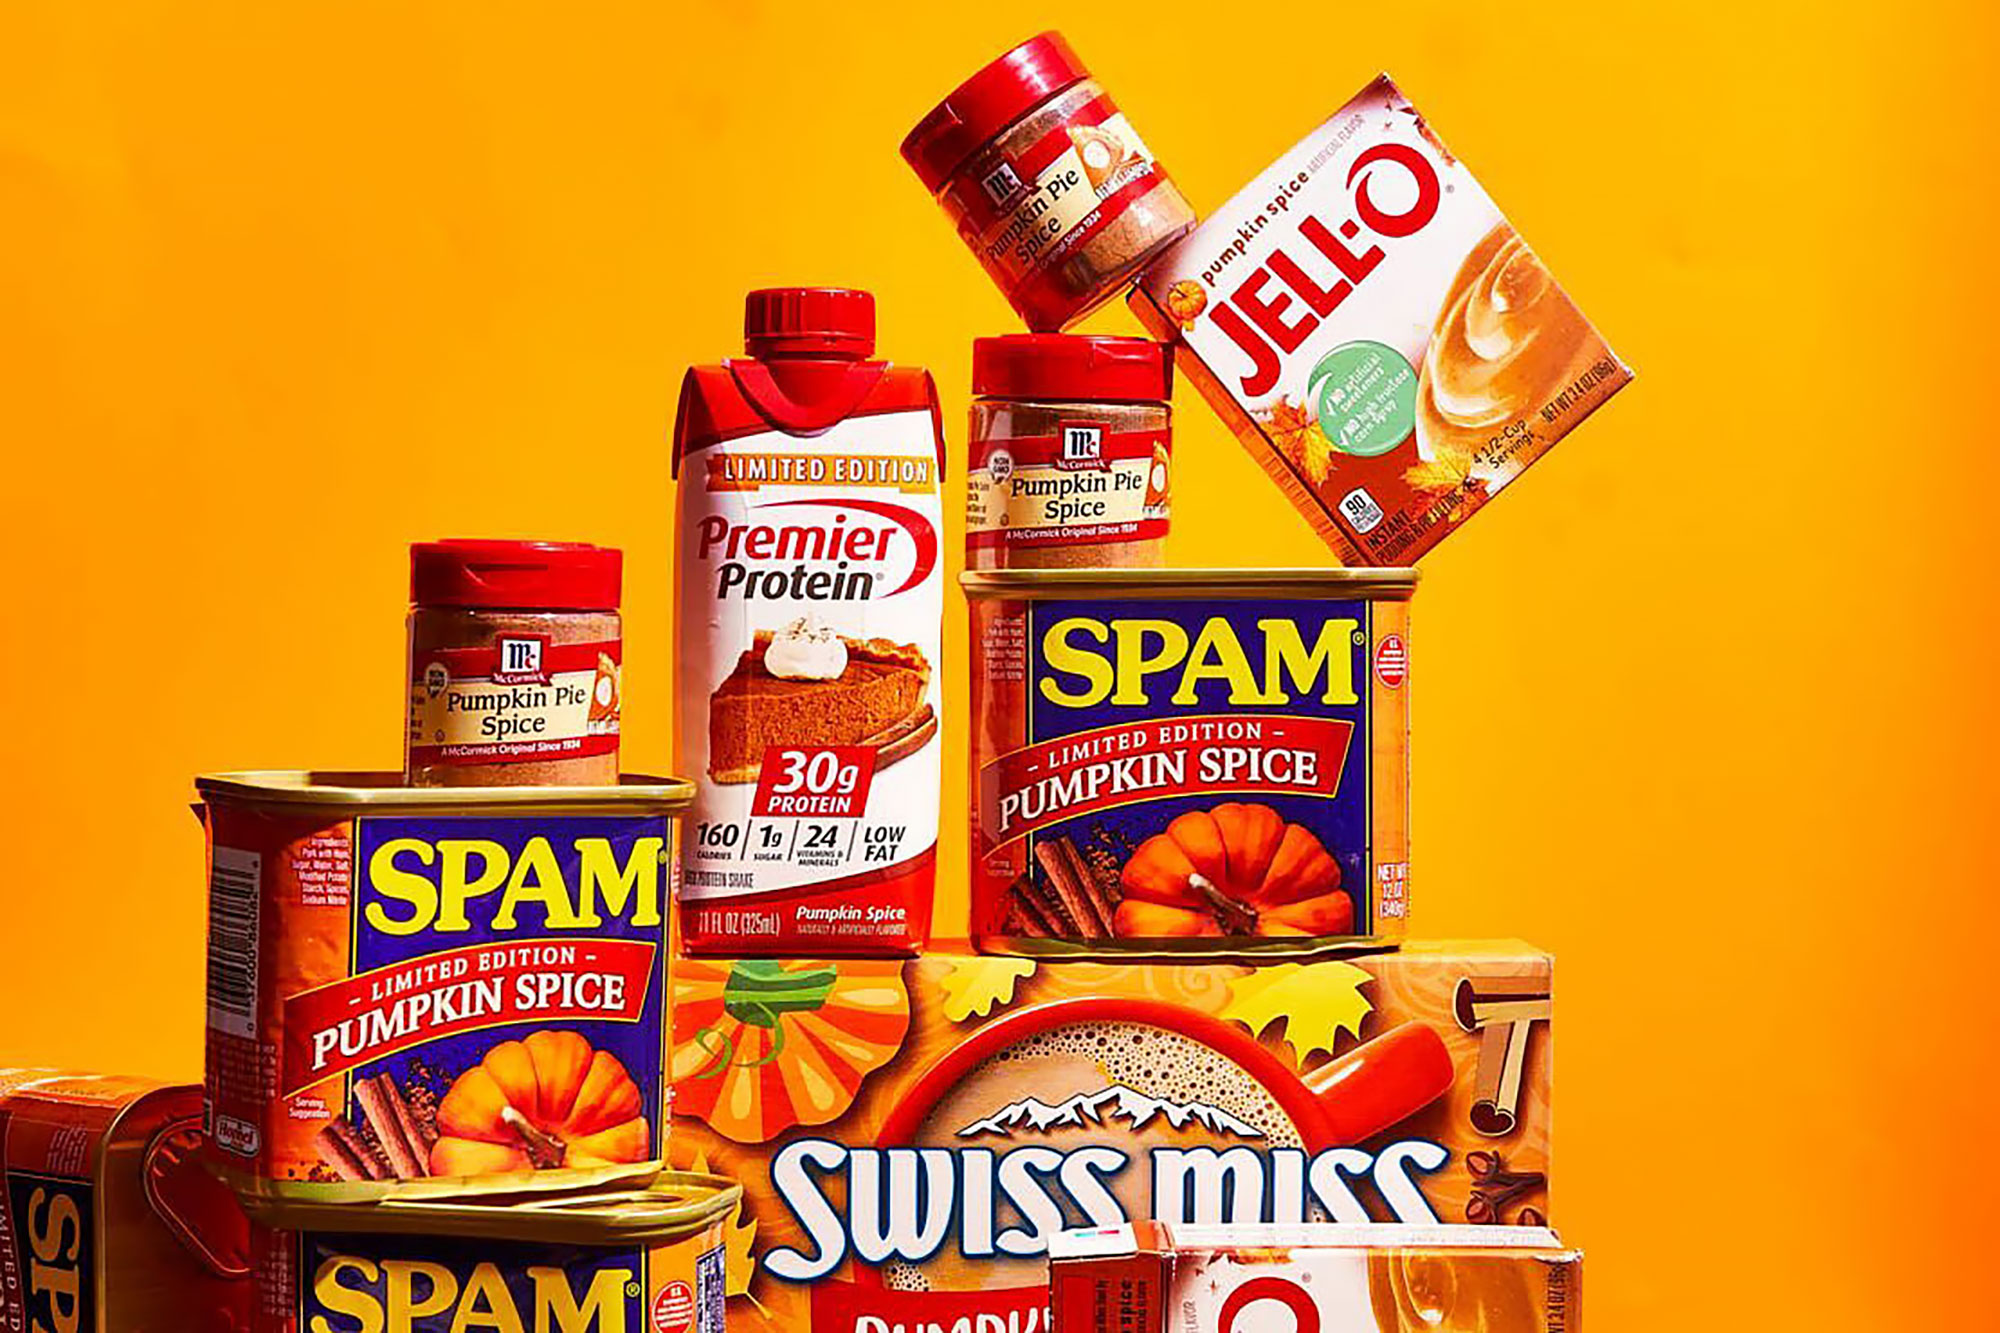 Pumpkin Spice-flavored grocery items